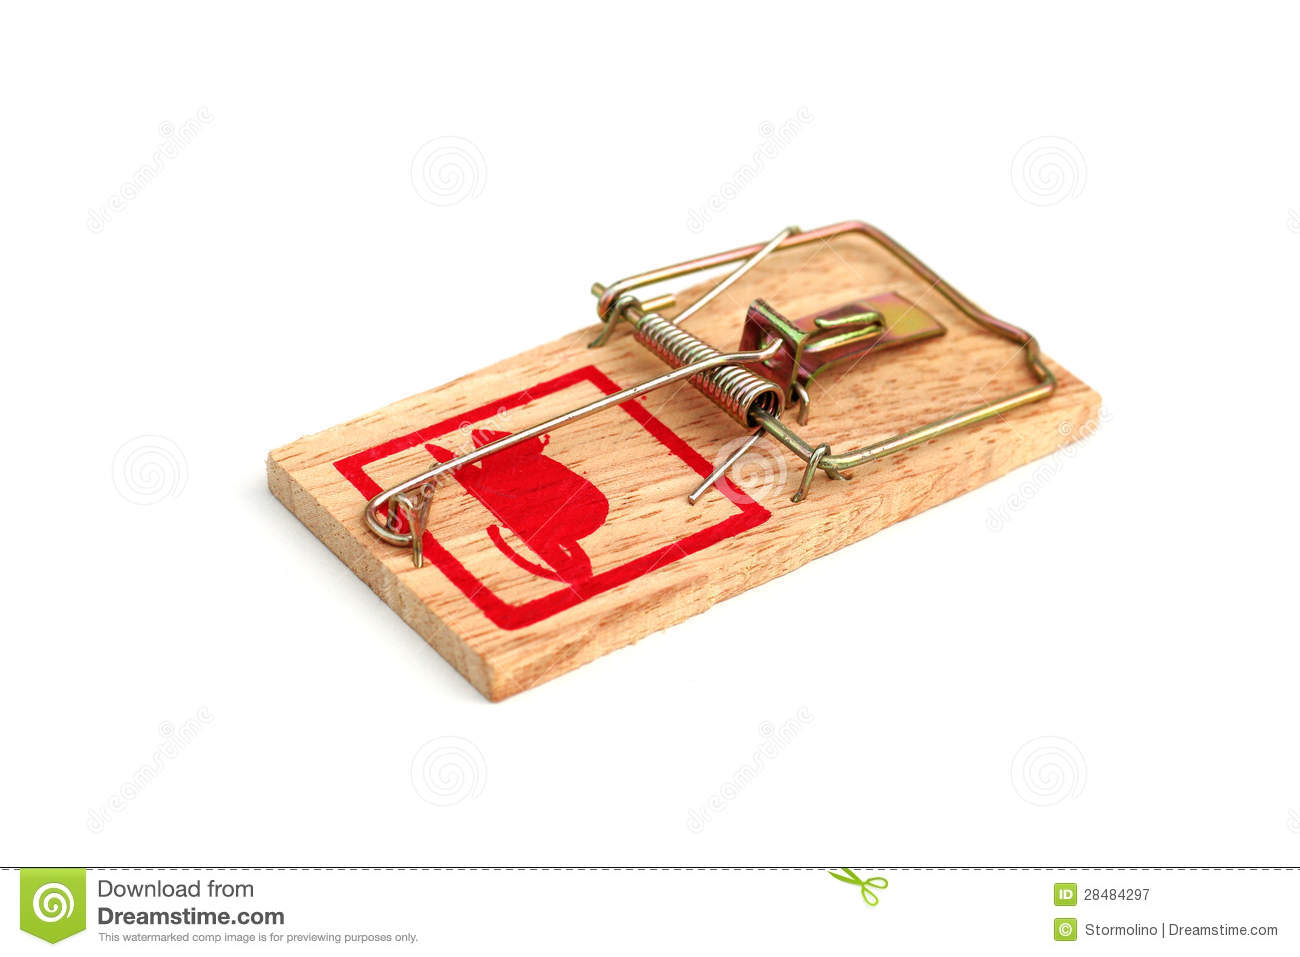 how to catch a mouse with a mouse trap